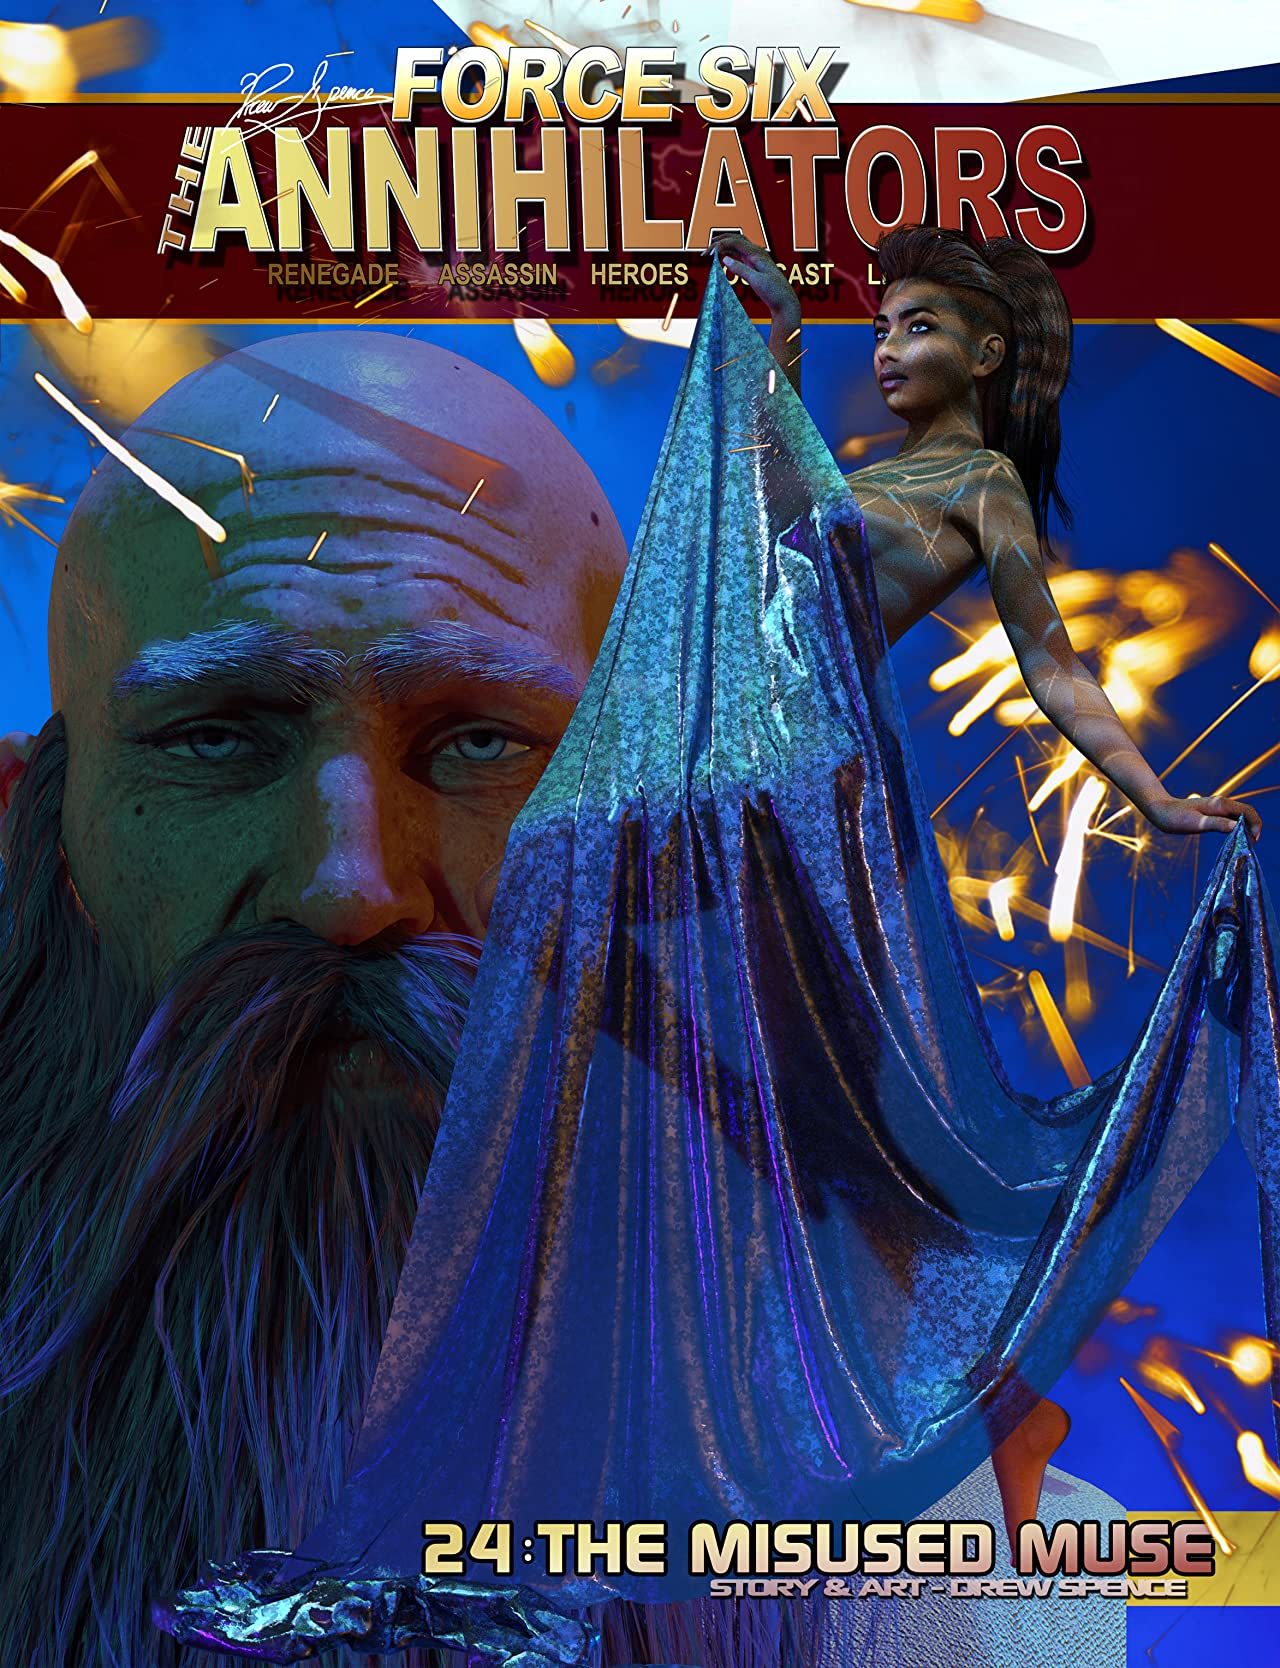 Force Six, The Annihilators #24: The Misused Muse